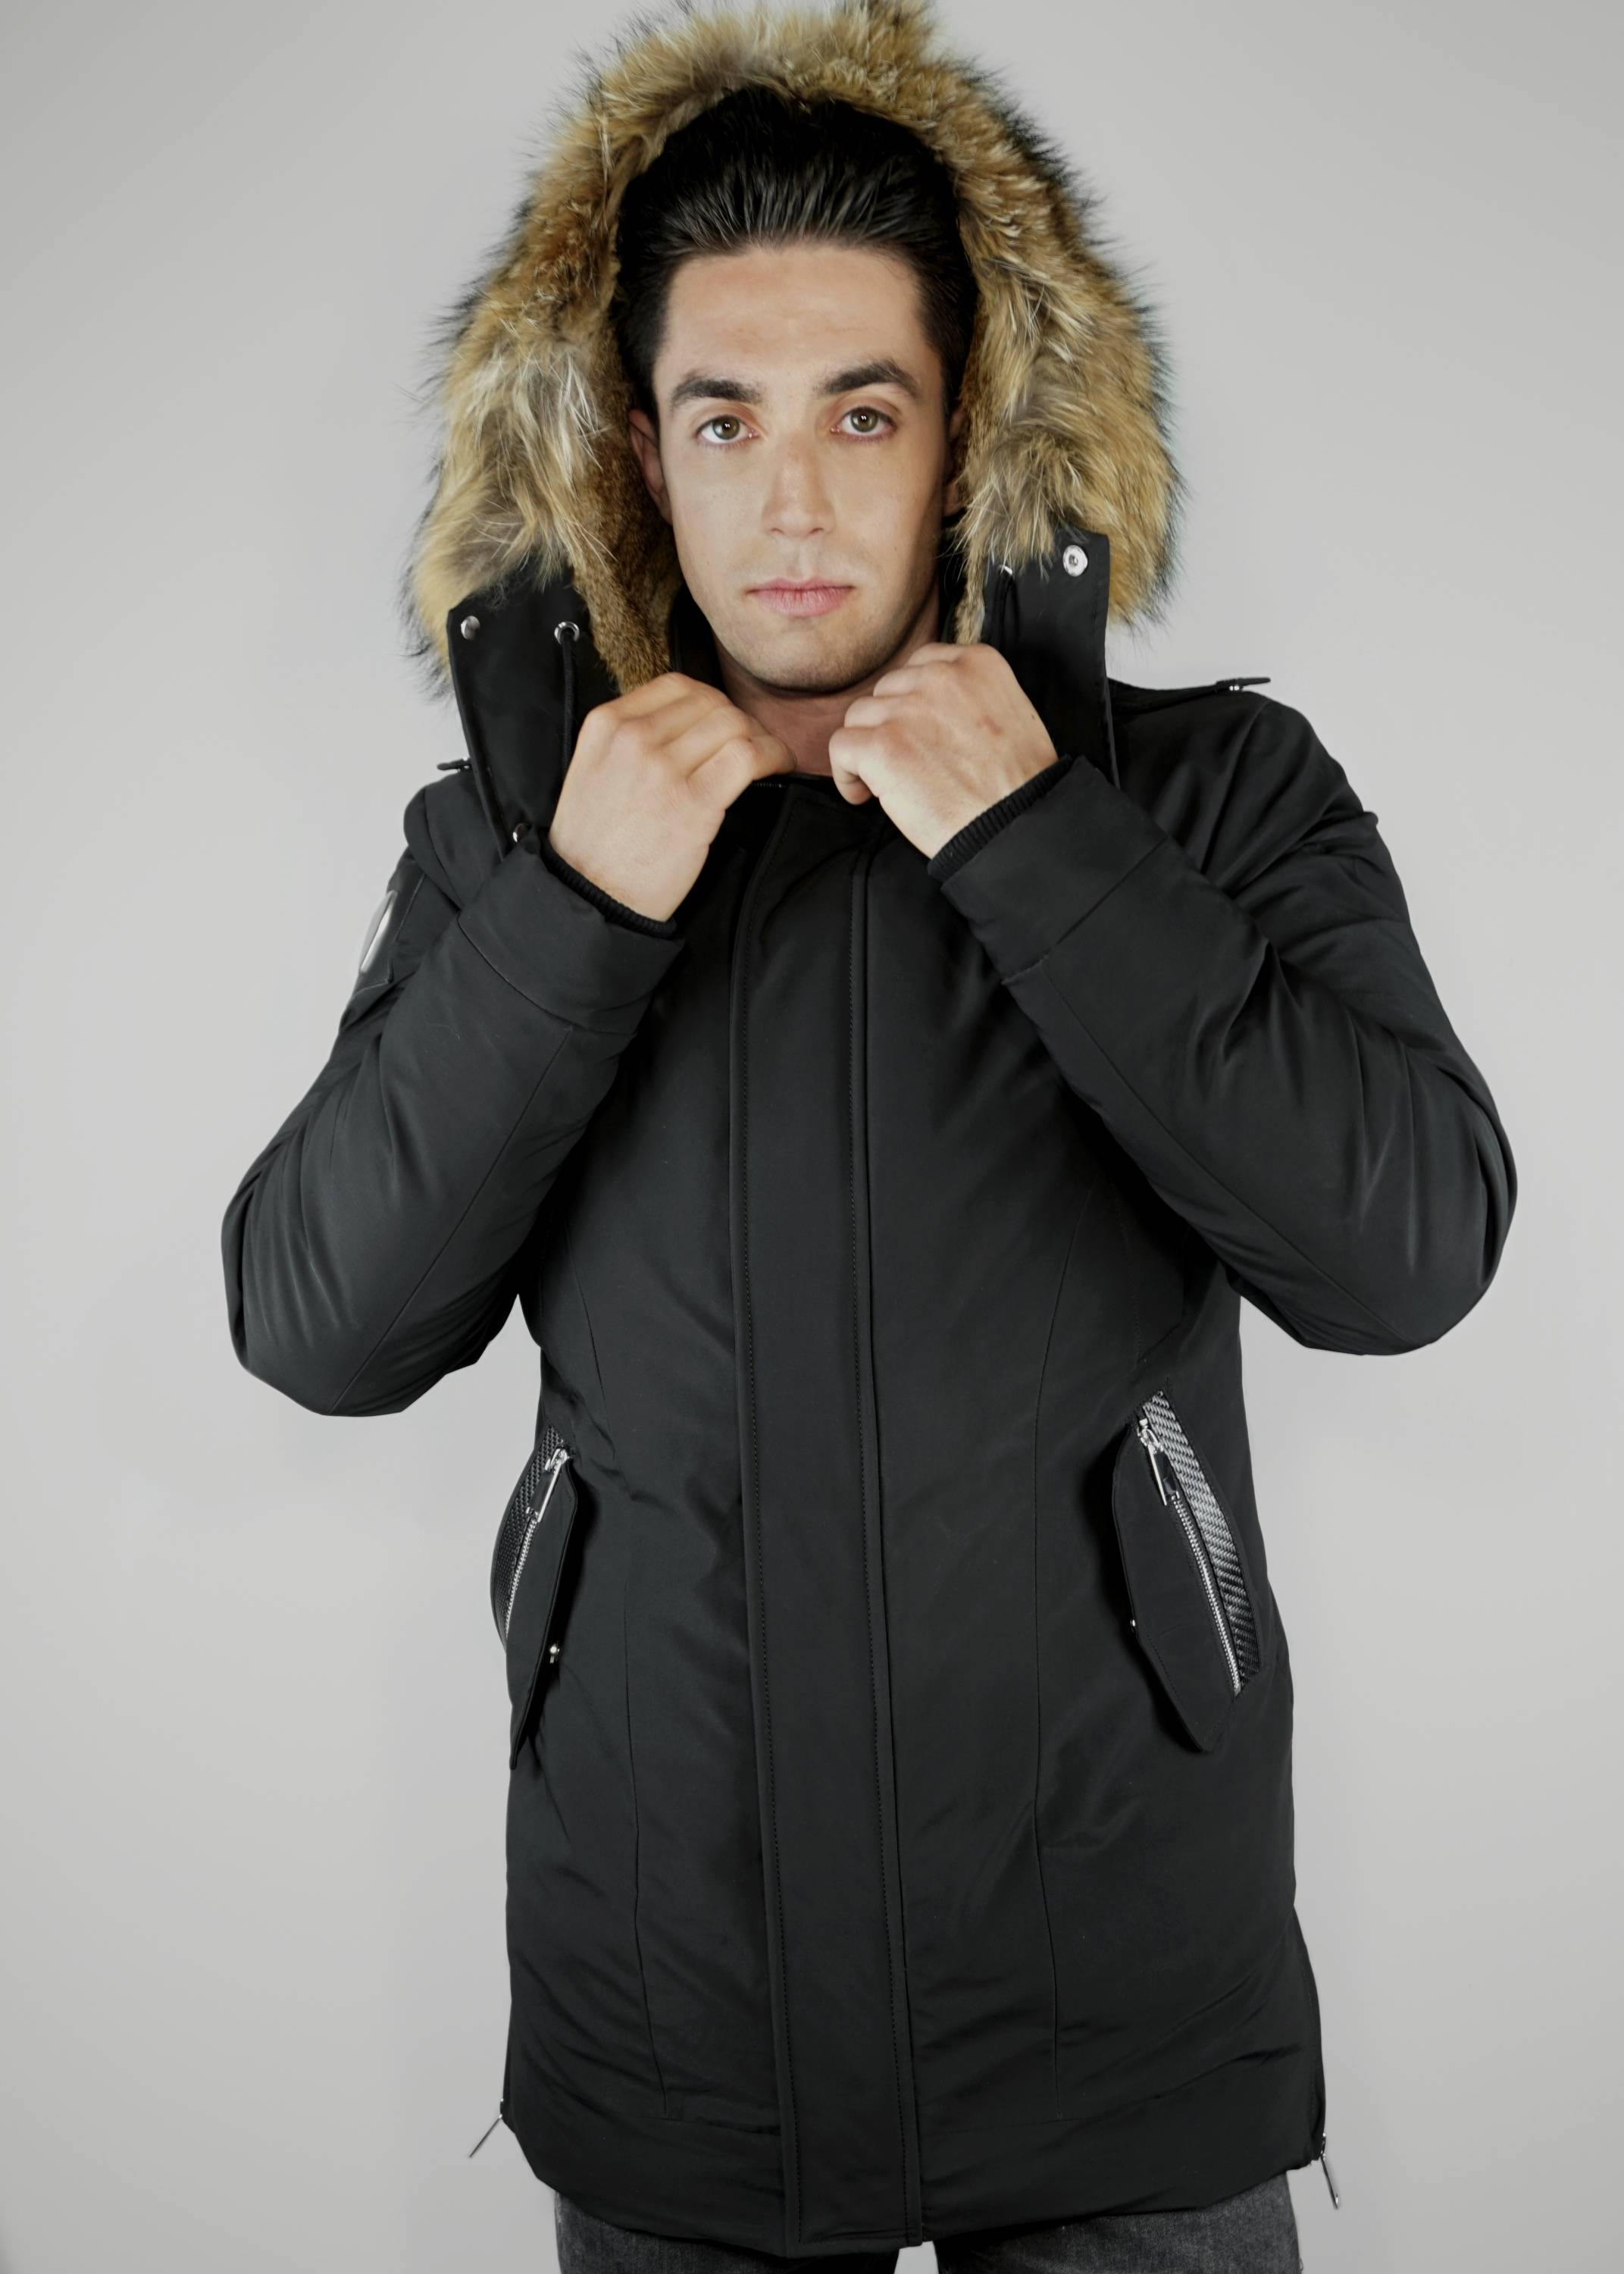 Carbonesque mens Luxus down parka